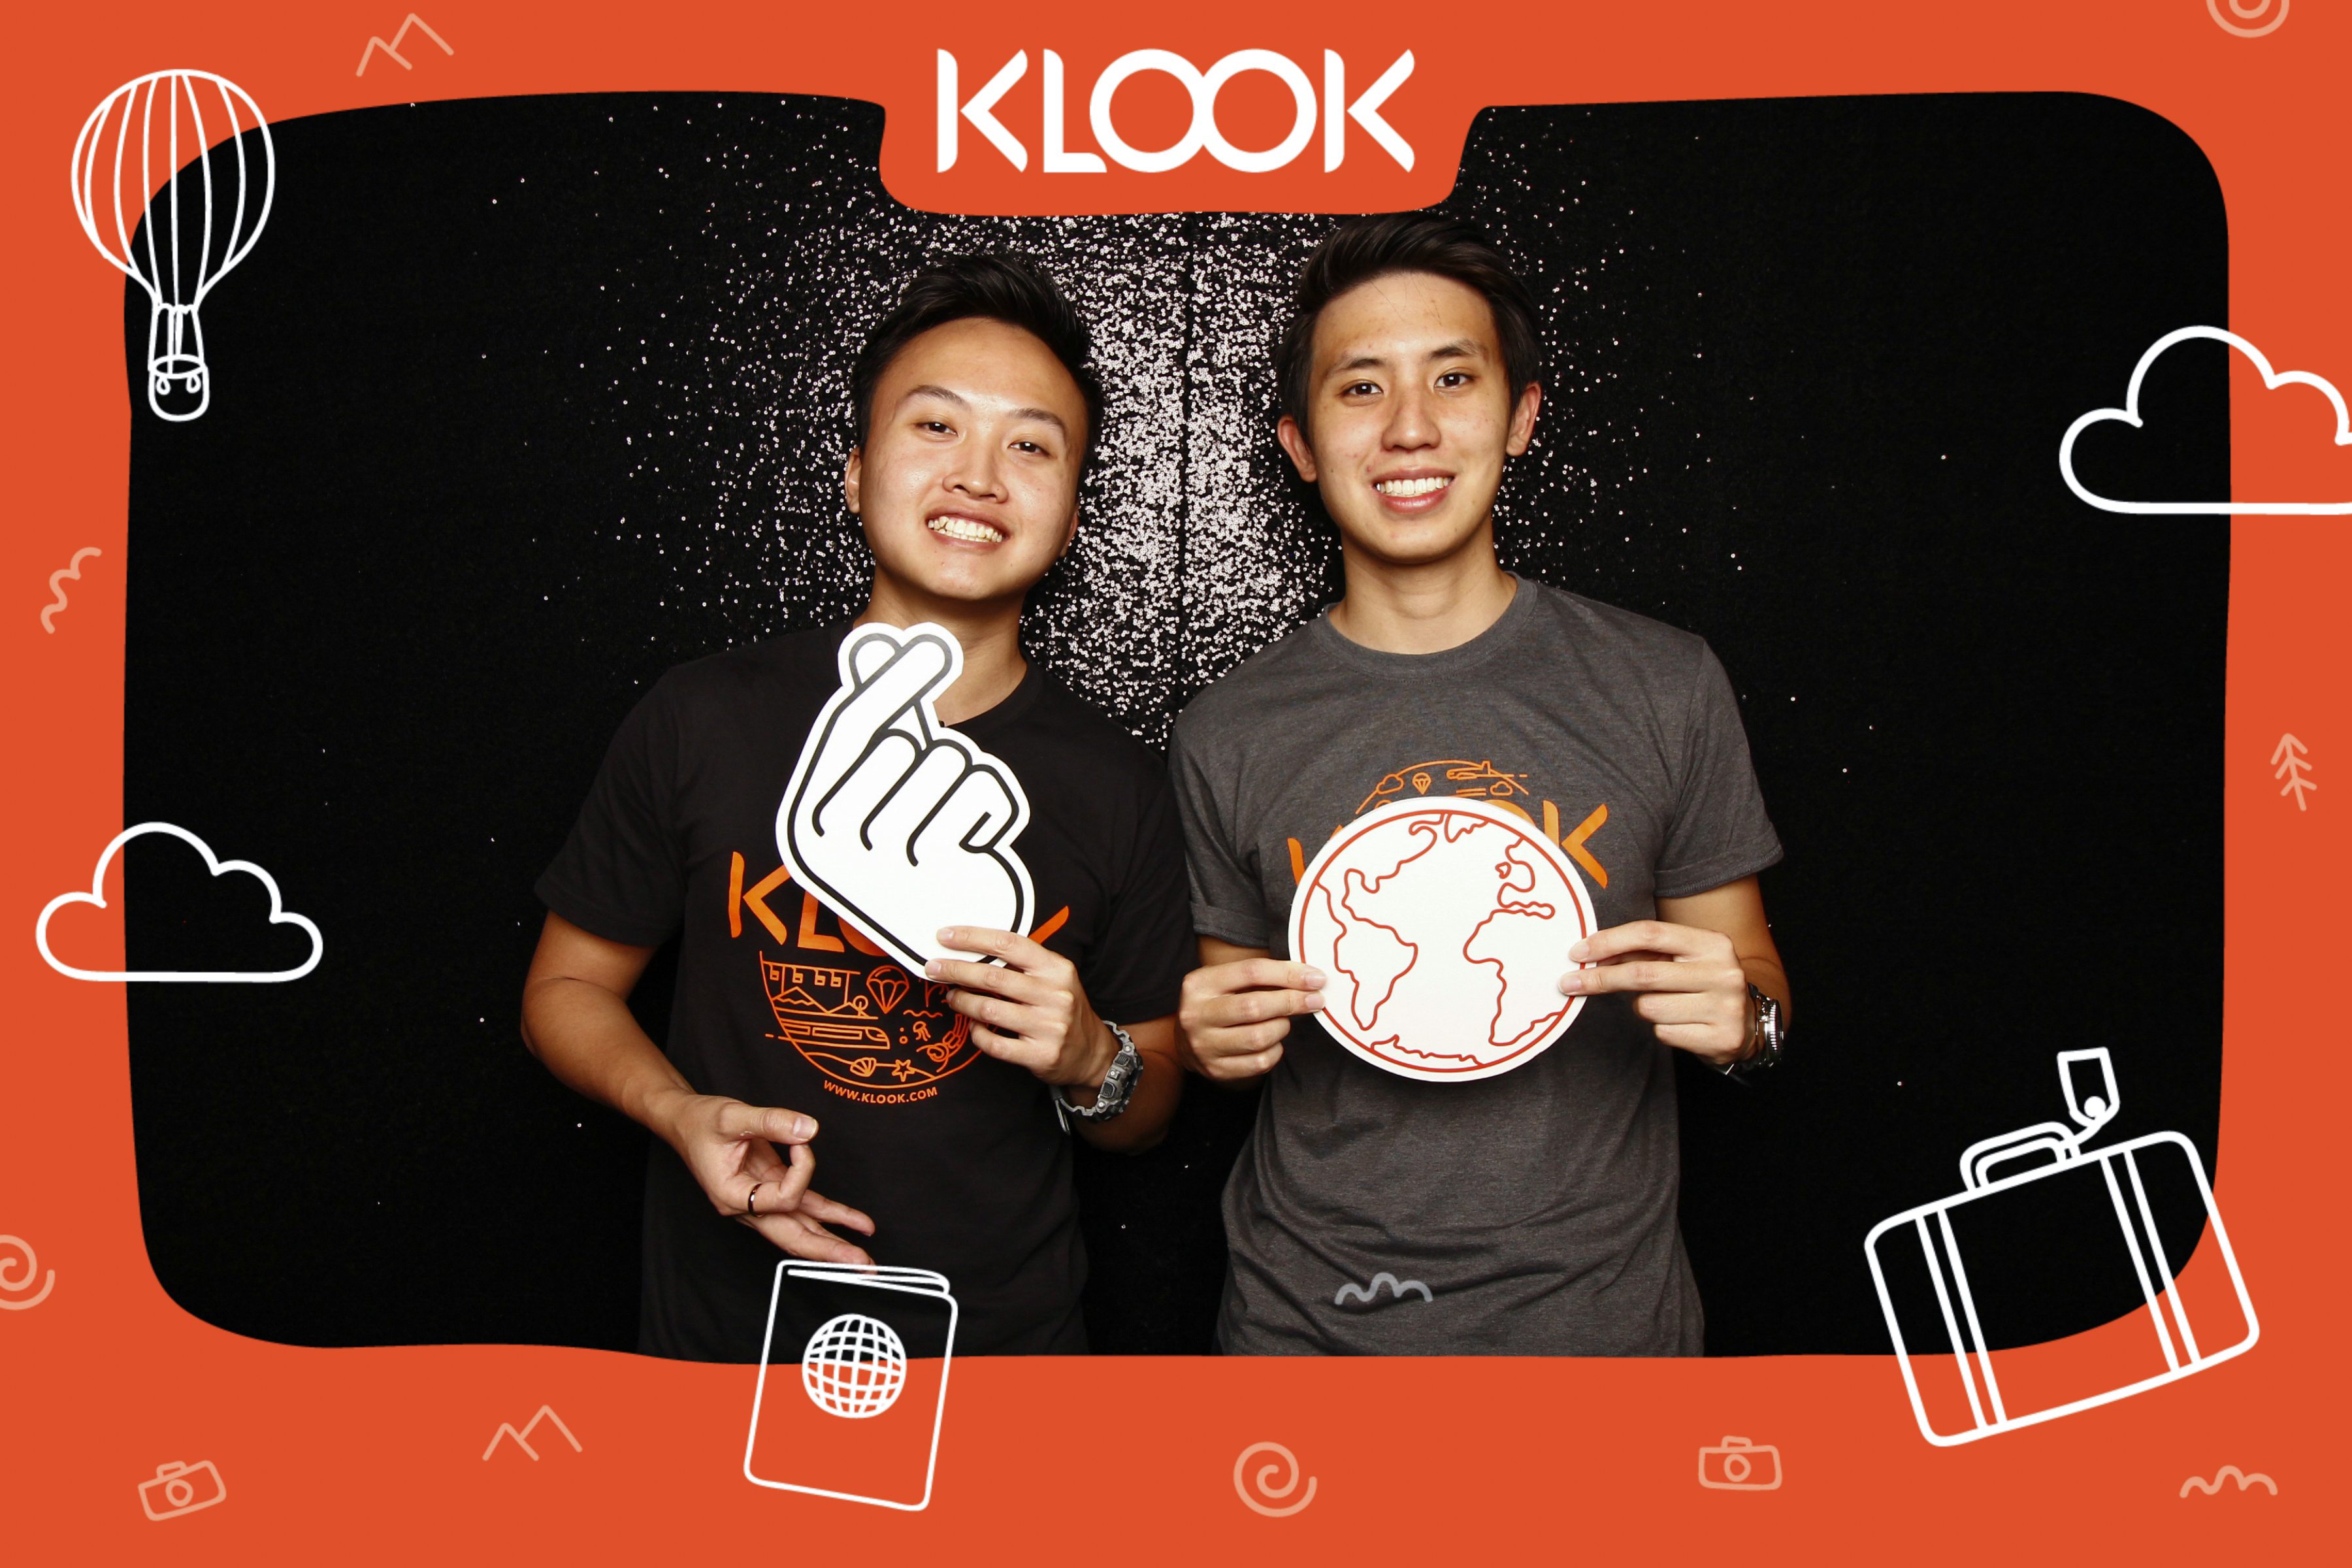 klook (8 of 120)